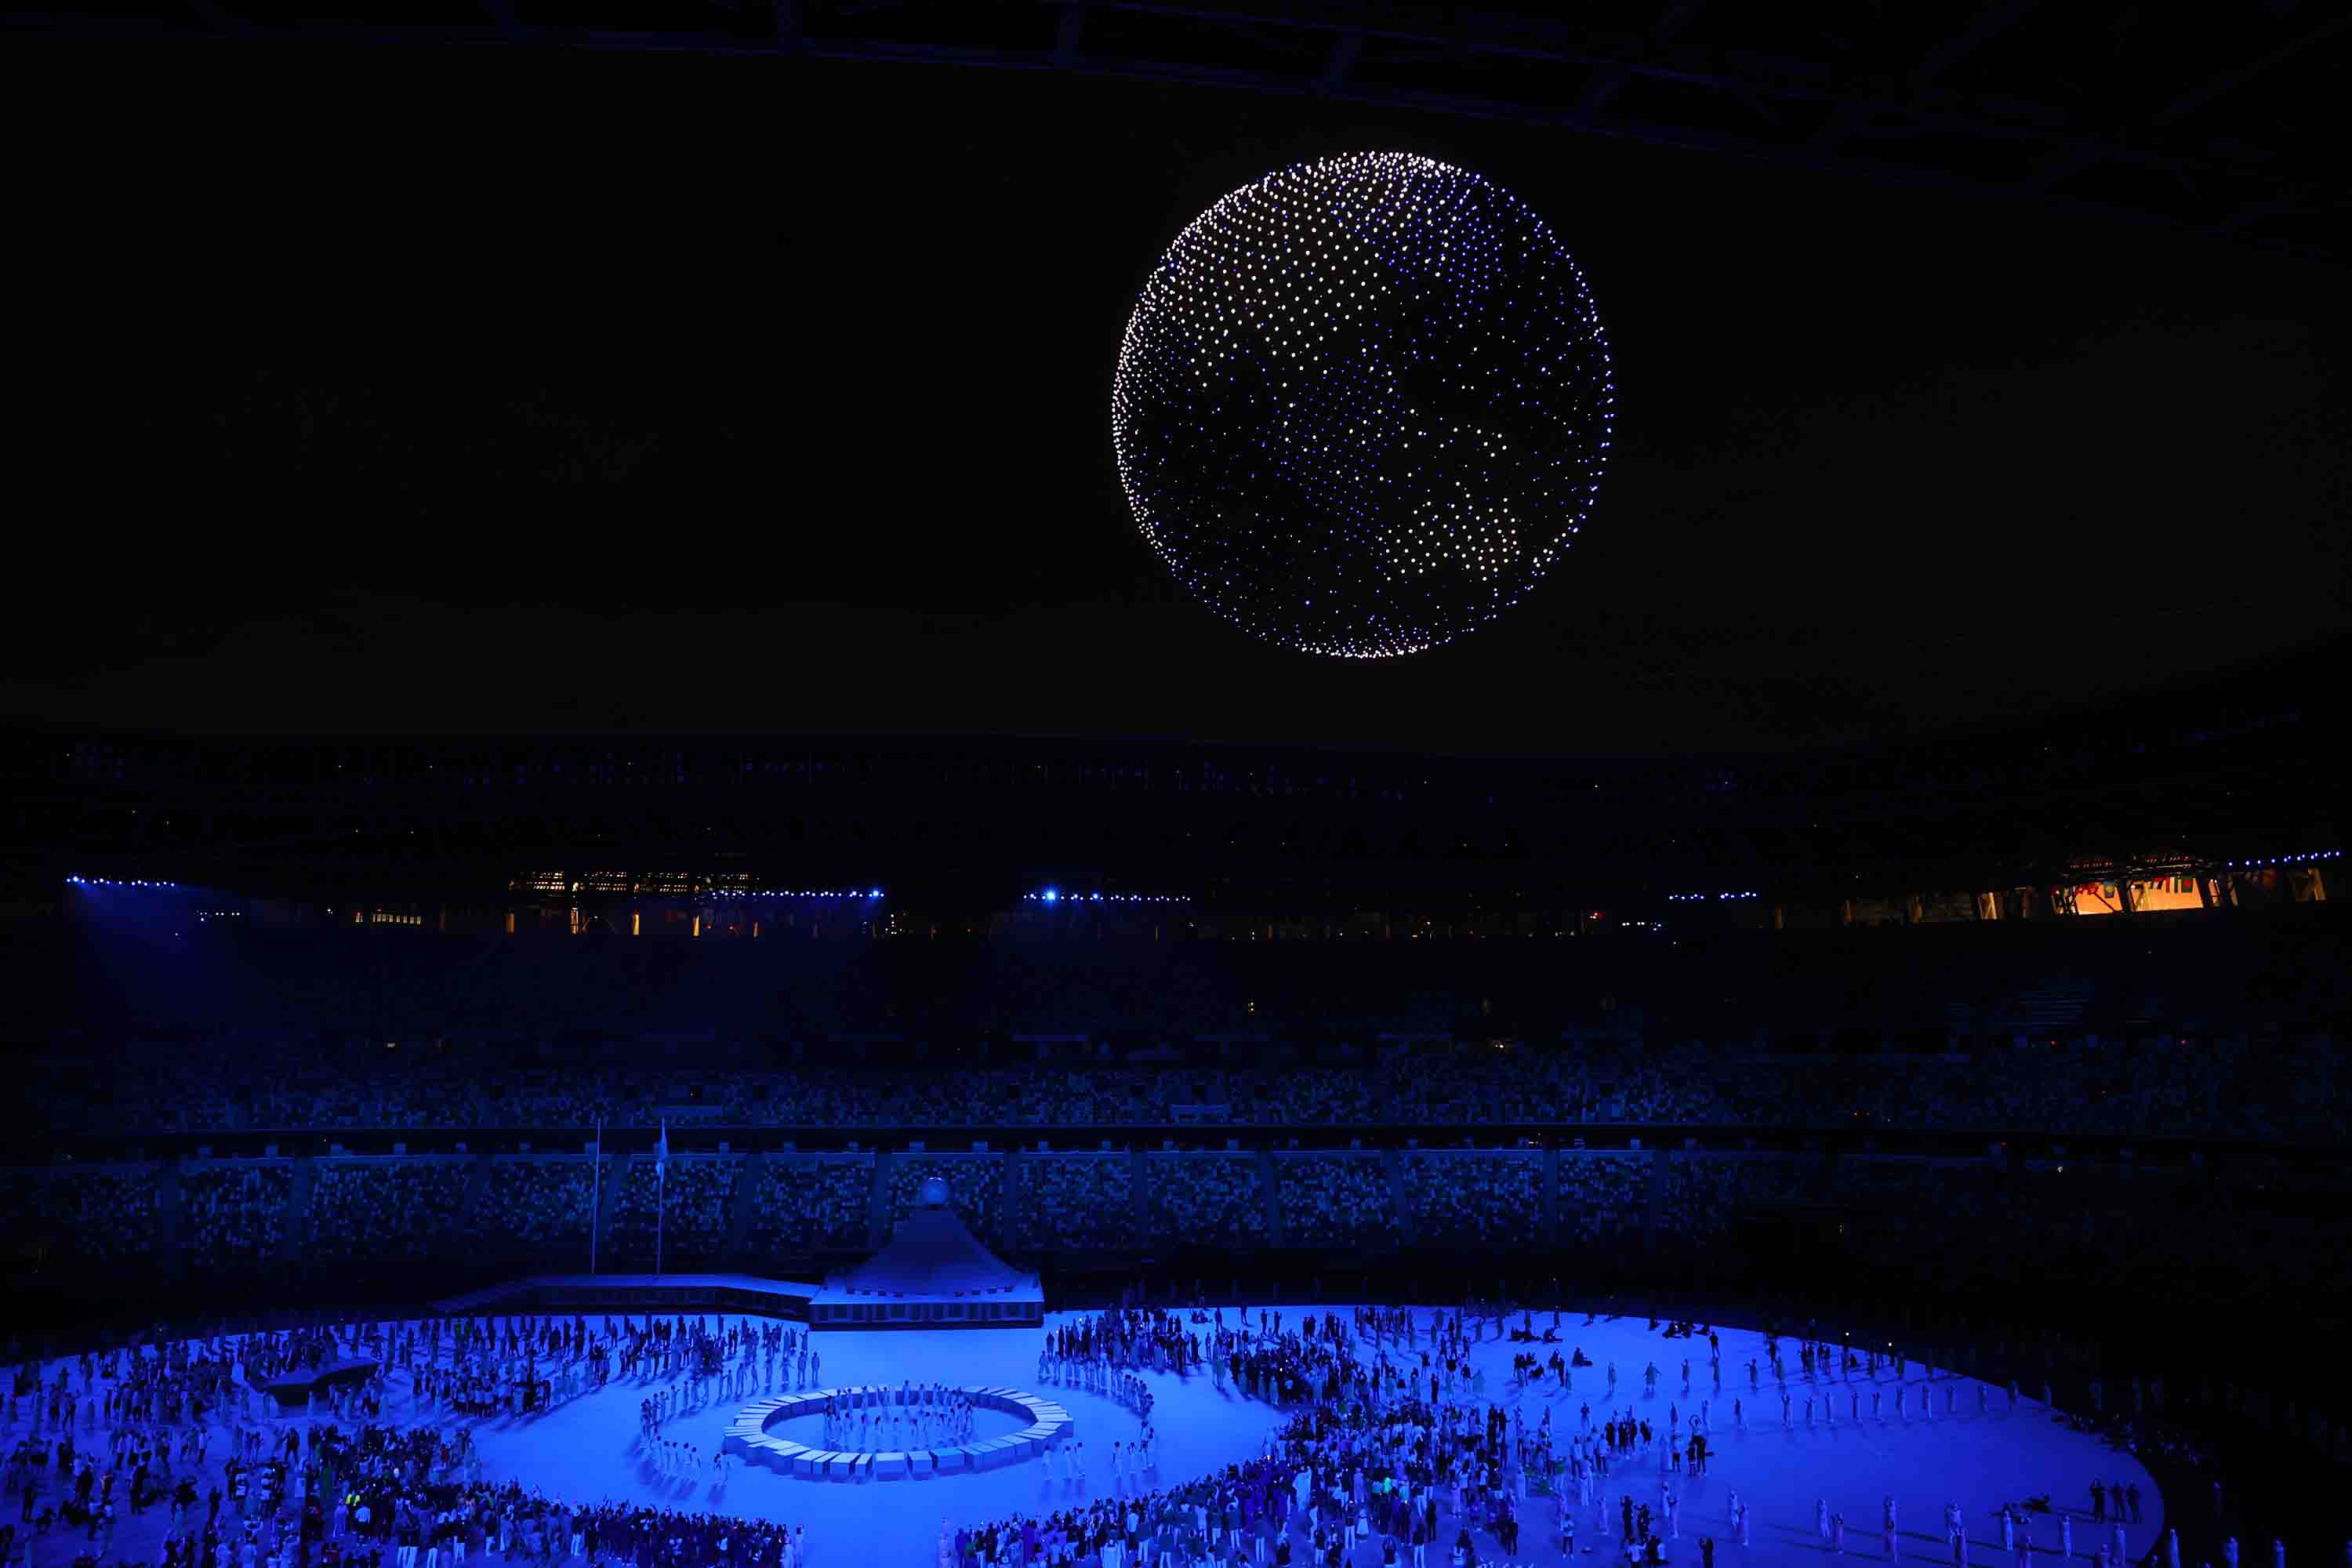 Drones fly over the stadium in the form of a globe during the Opening Ceremony.